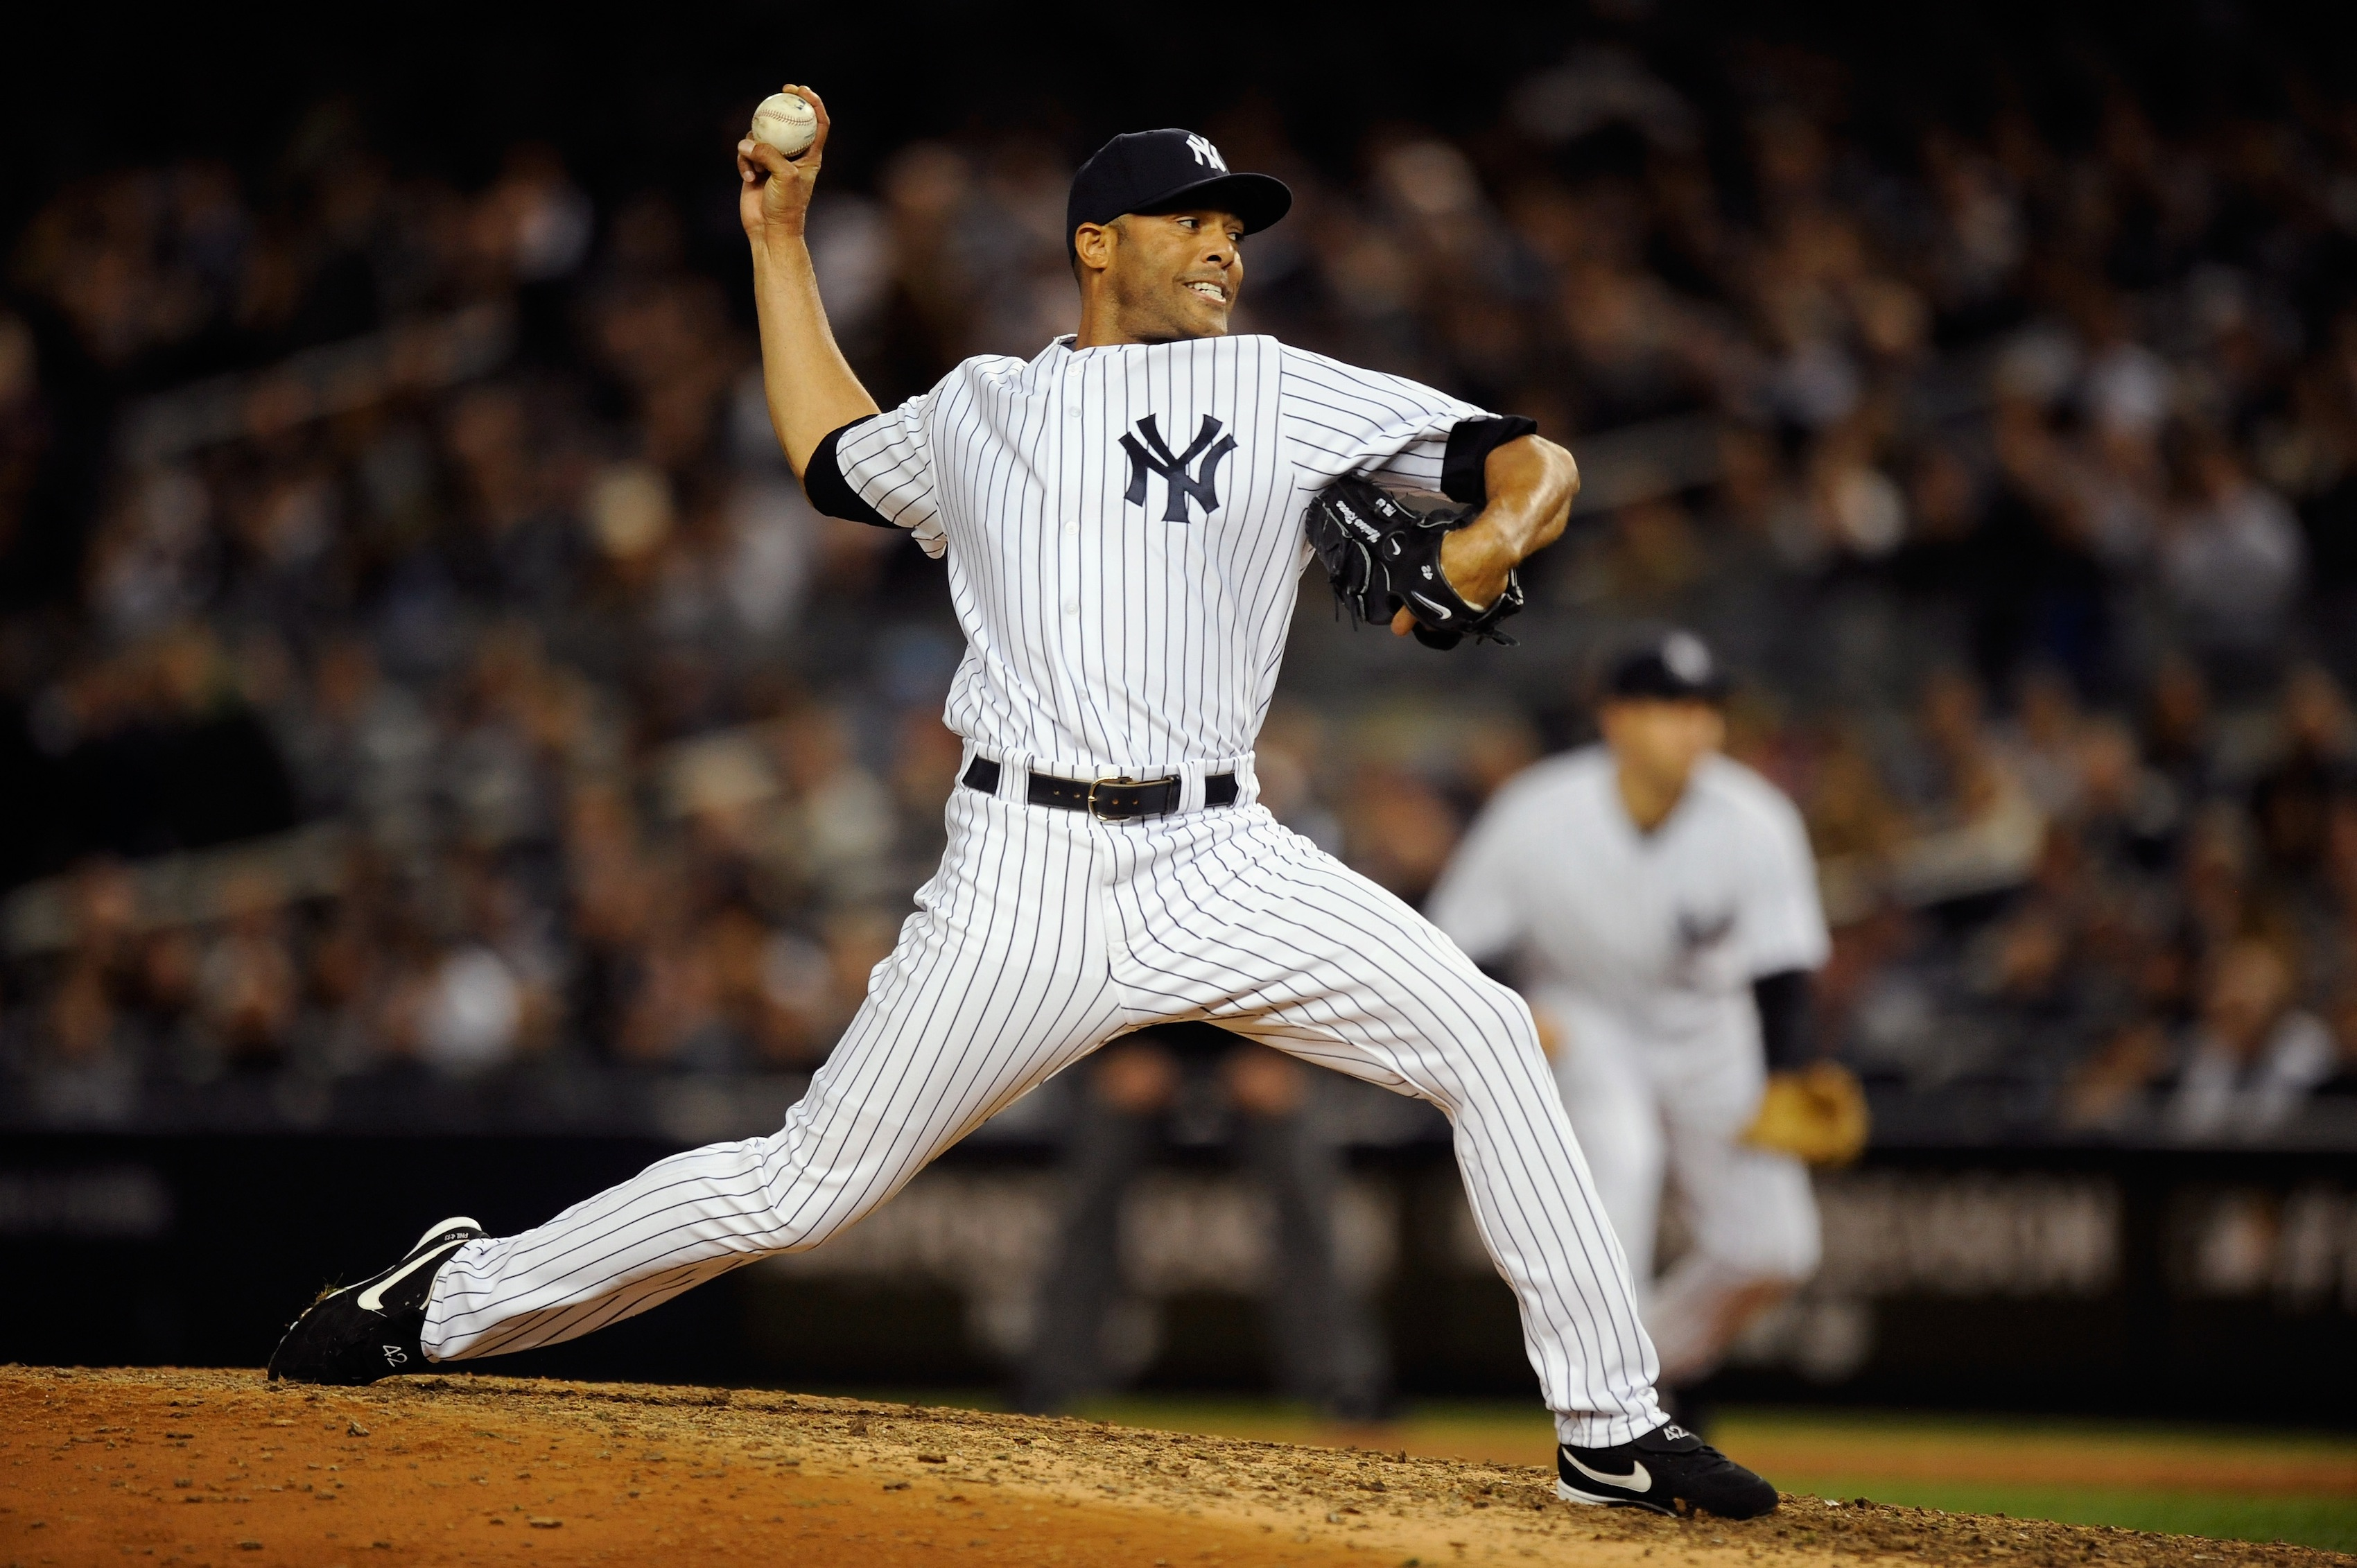 Mariano Rivera PhotosHD Wallpapers